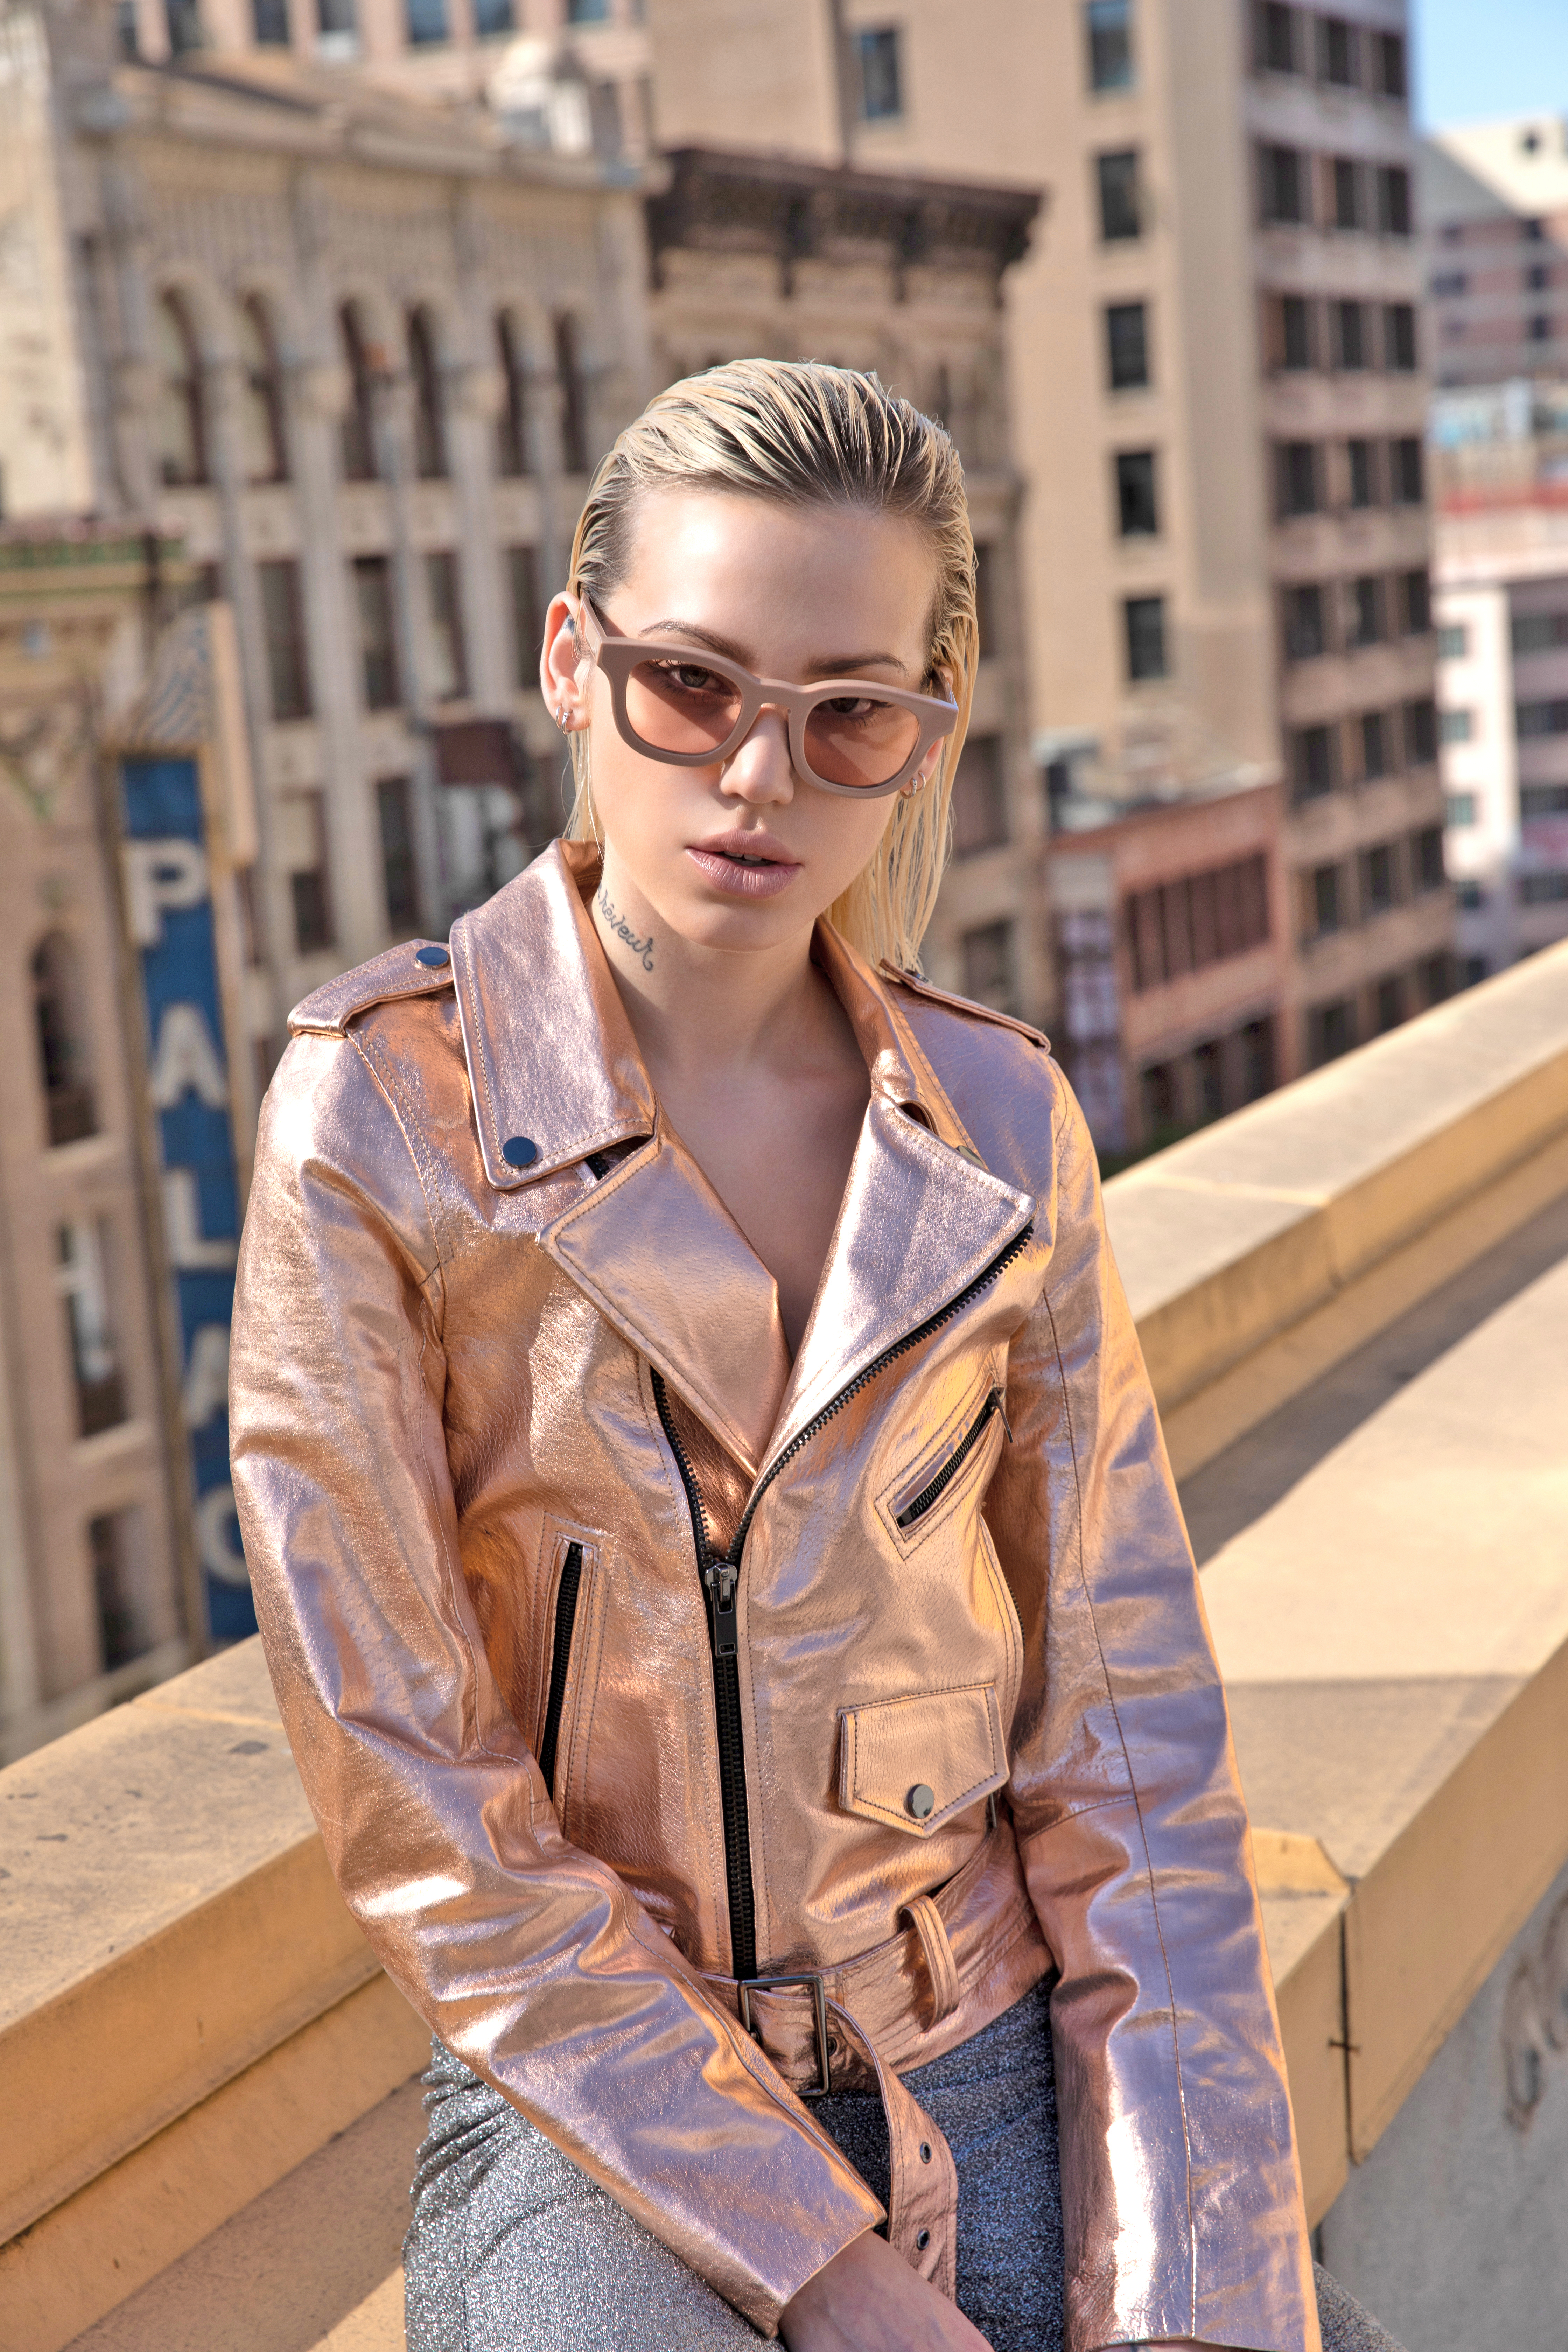 080419_ThierryLasry_0306